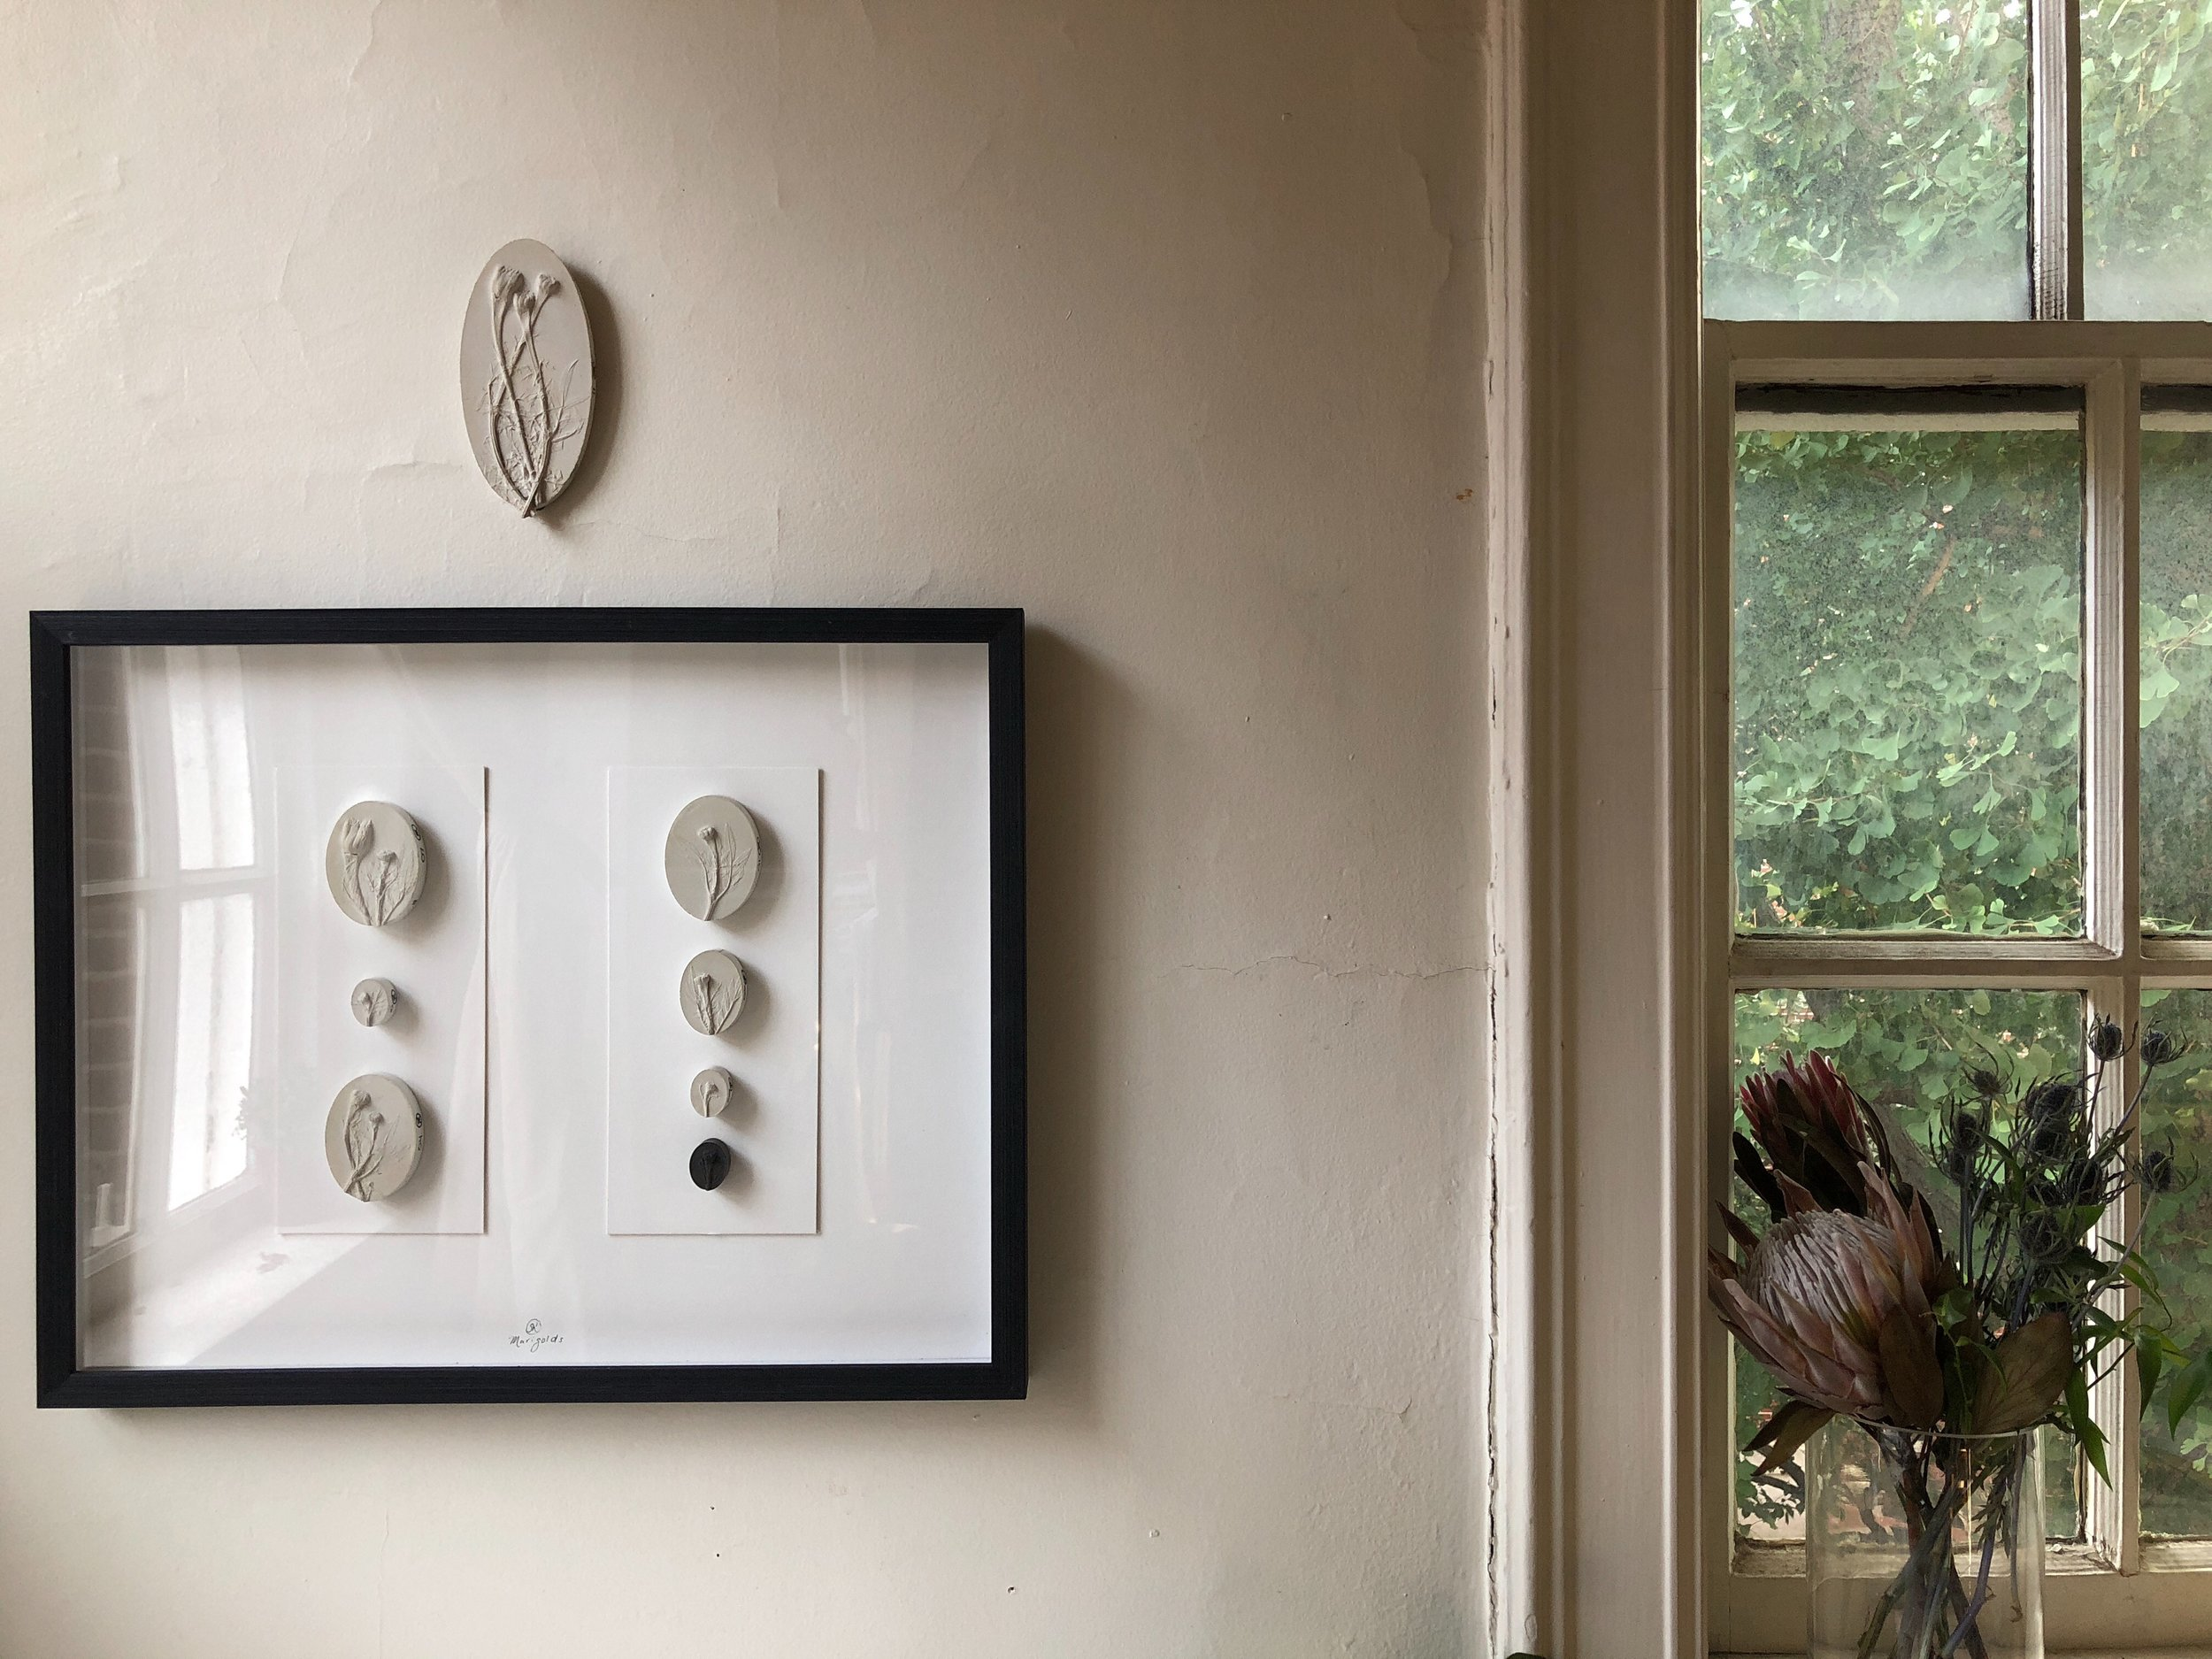 Purchase without the copper hooks in the back for easy framing.